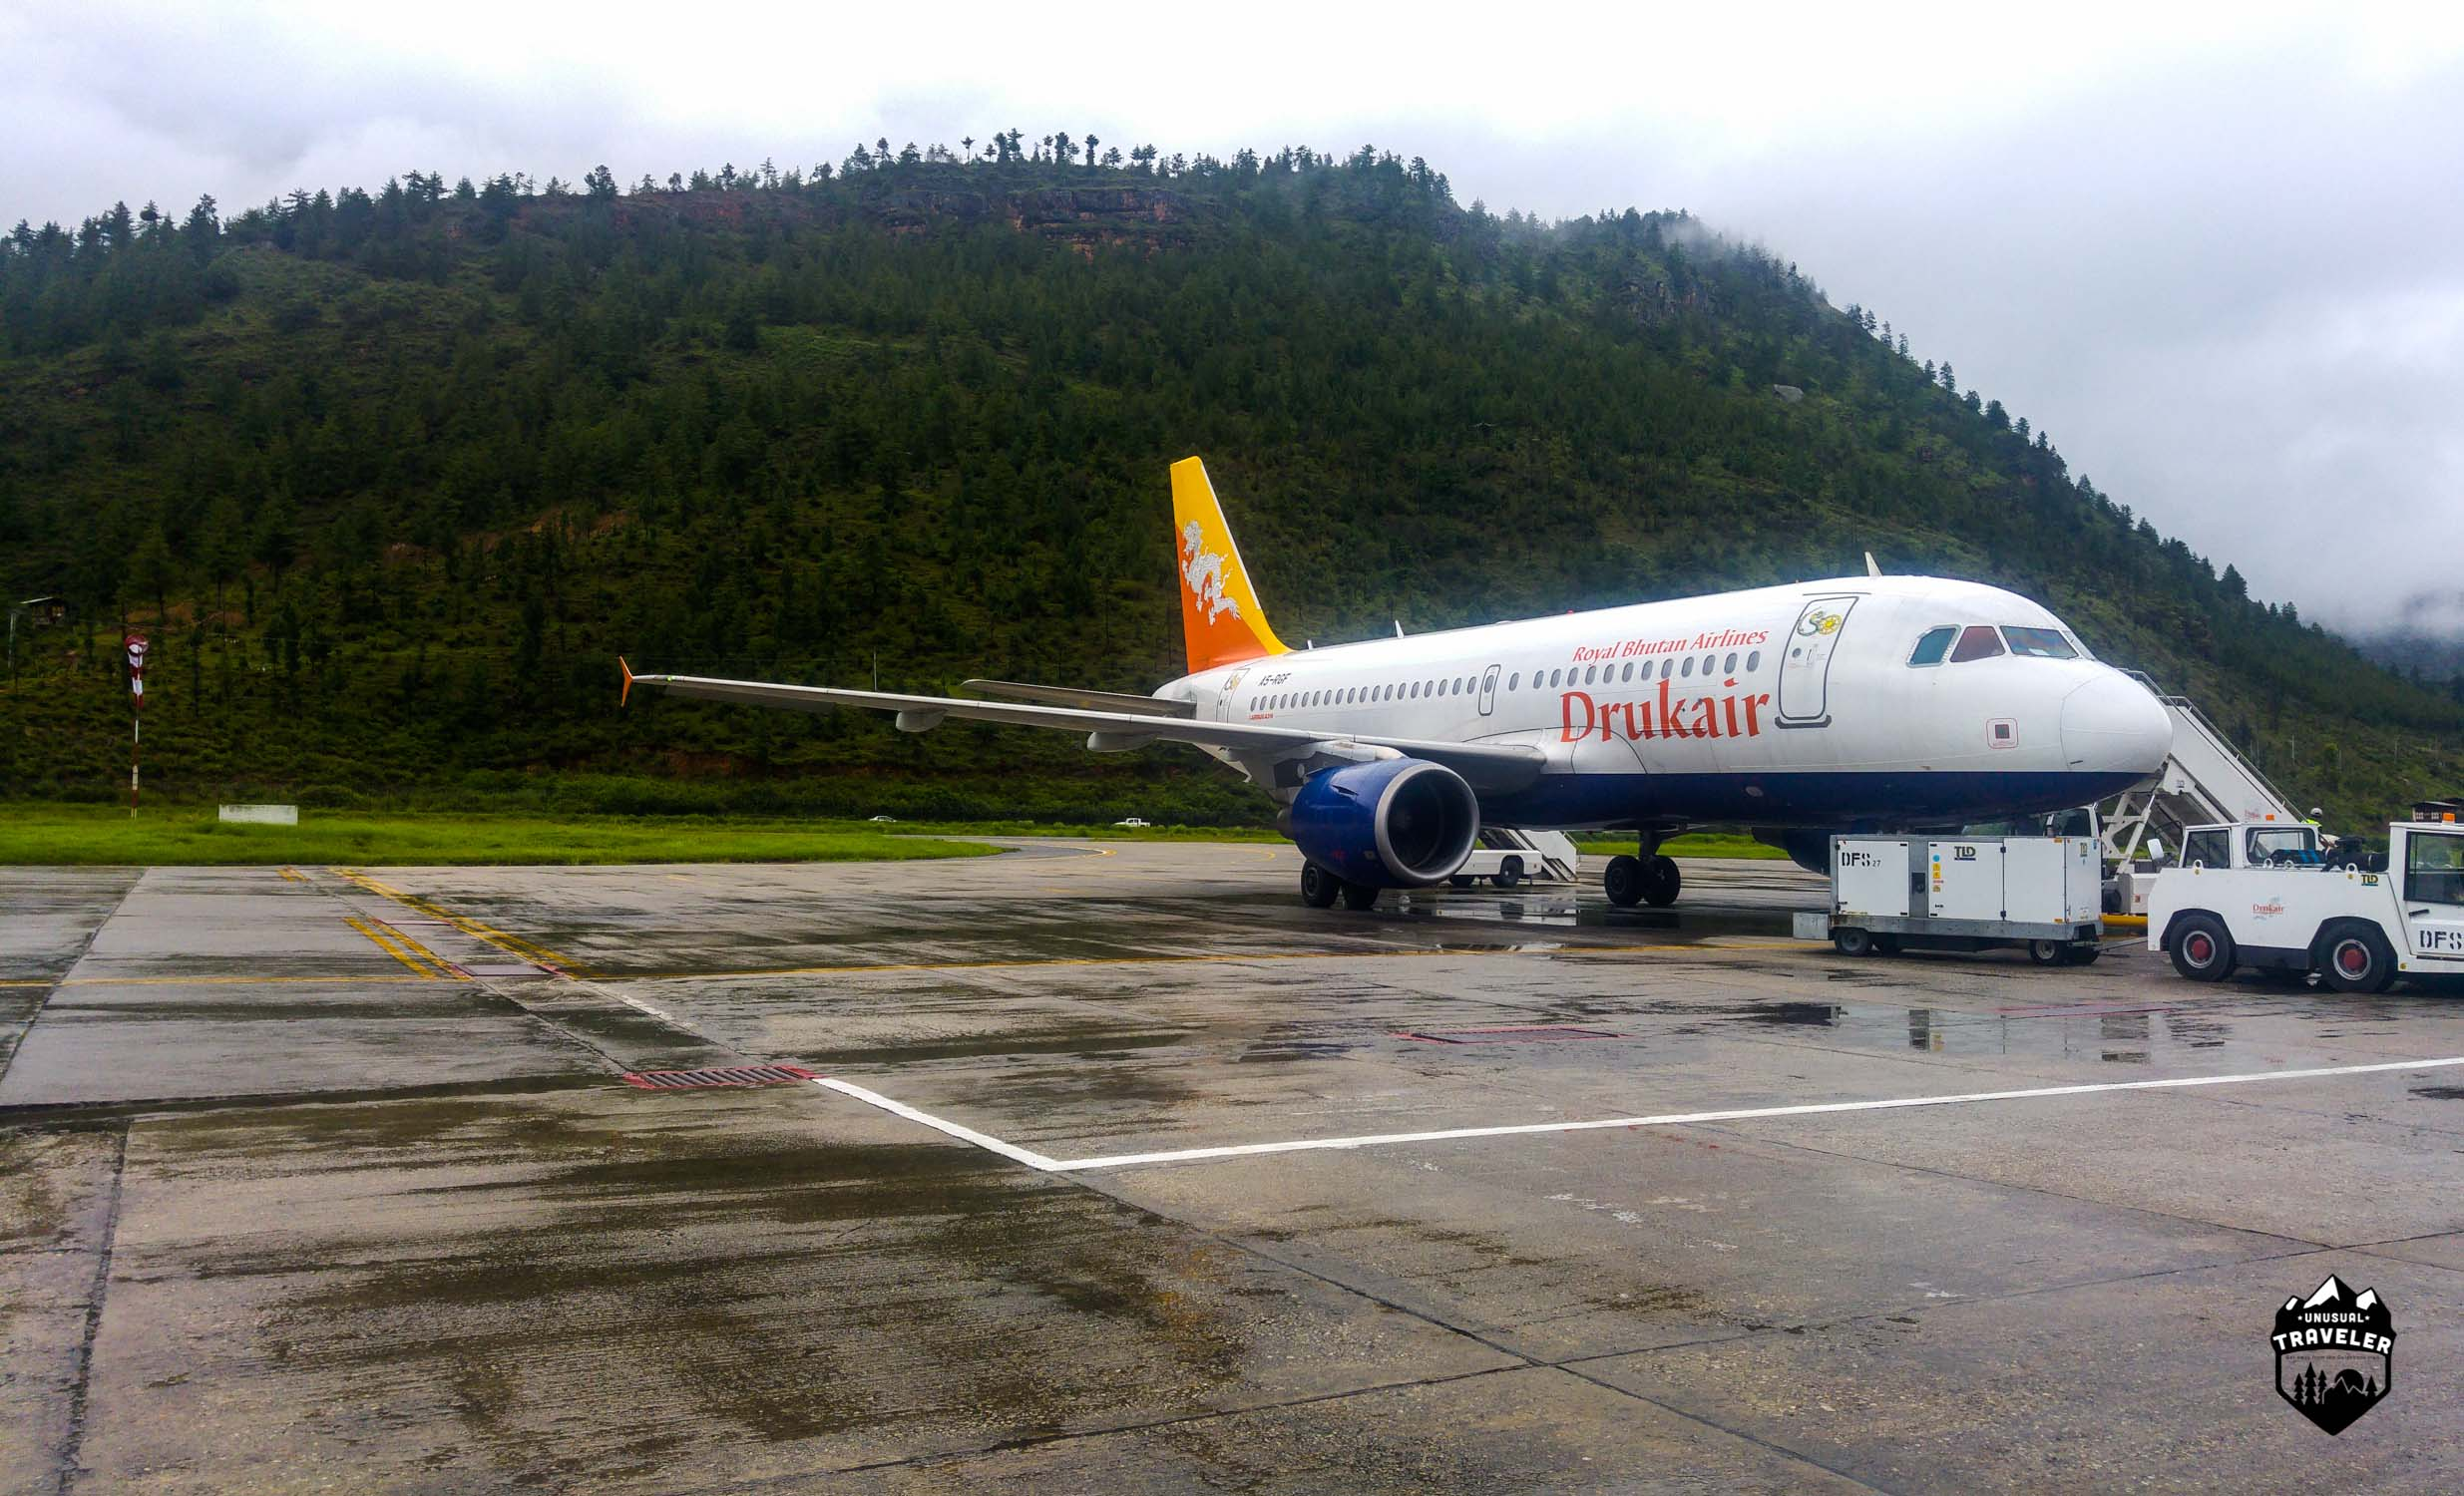 National Airline of Bhutan, Druk Air.